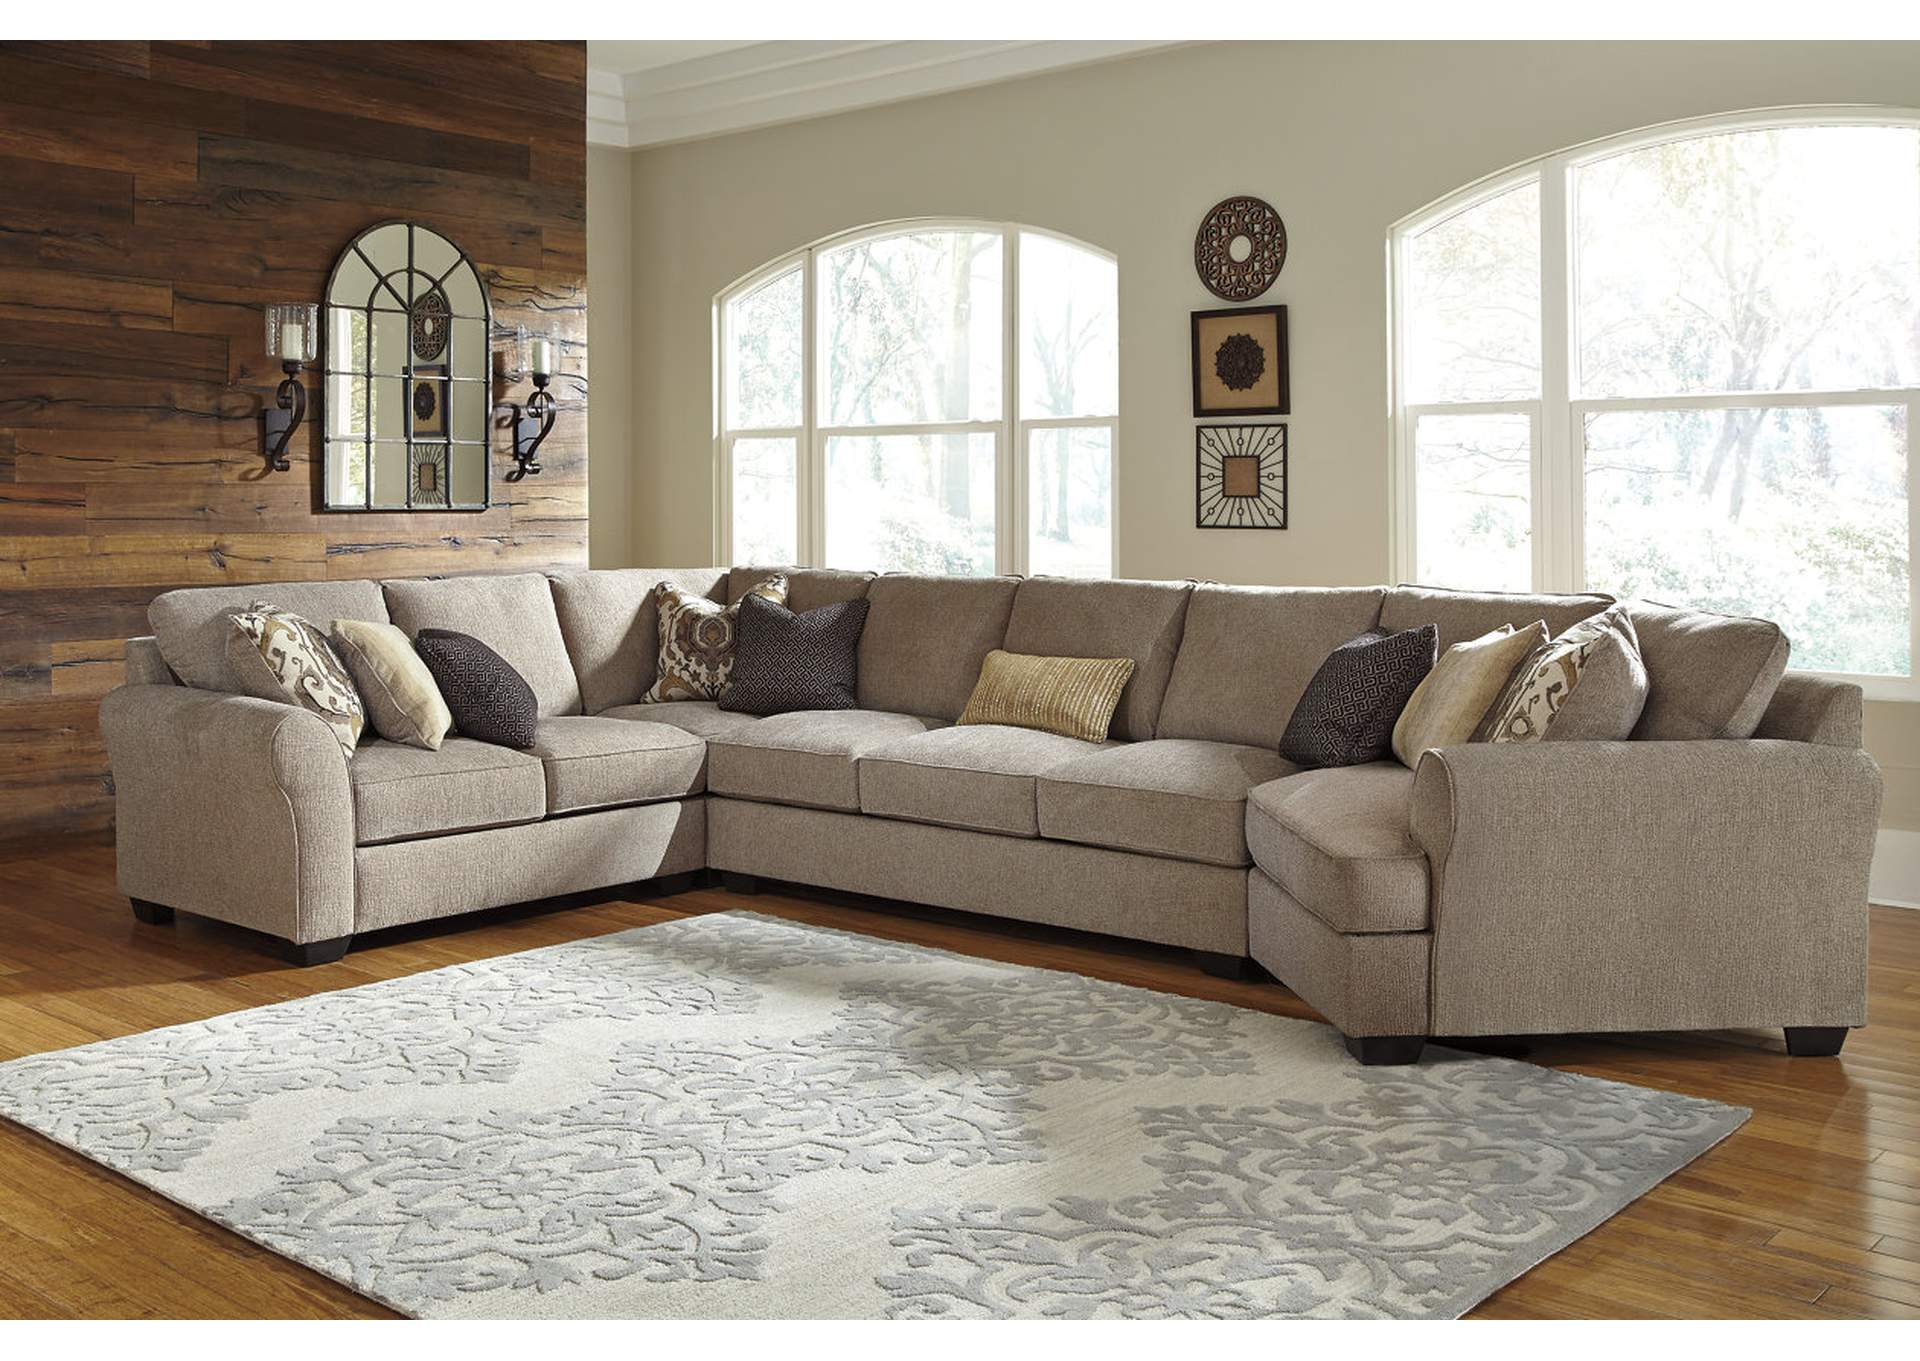 Pantomine Driftwood Left Facing Loveseat w/Sofa and Right Facing Cuddler,Benchcraft